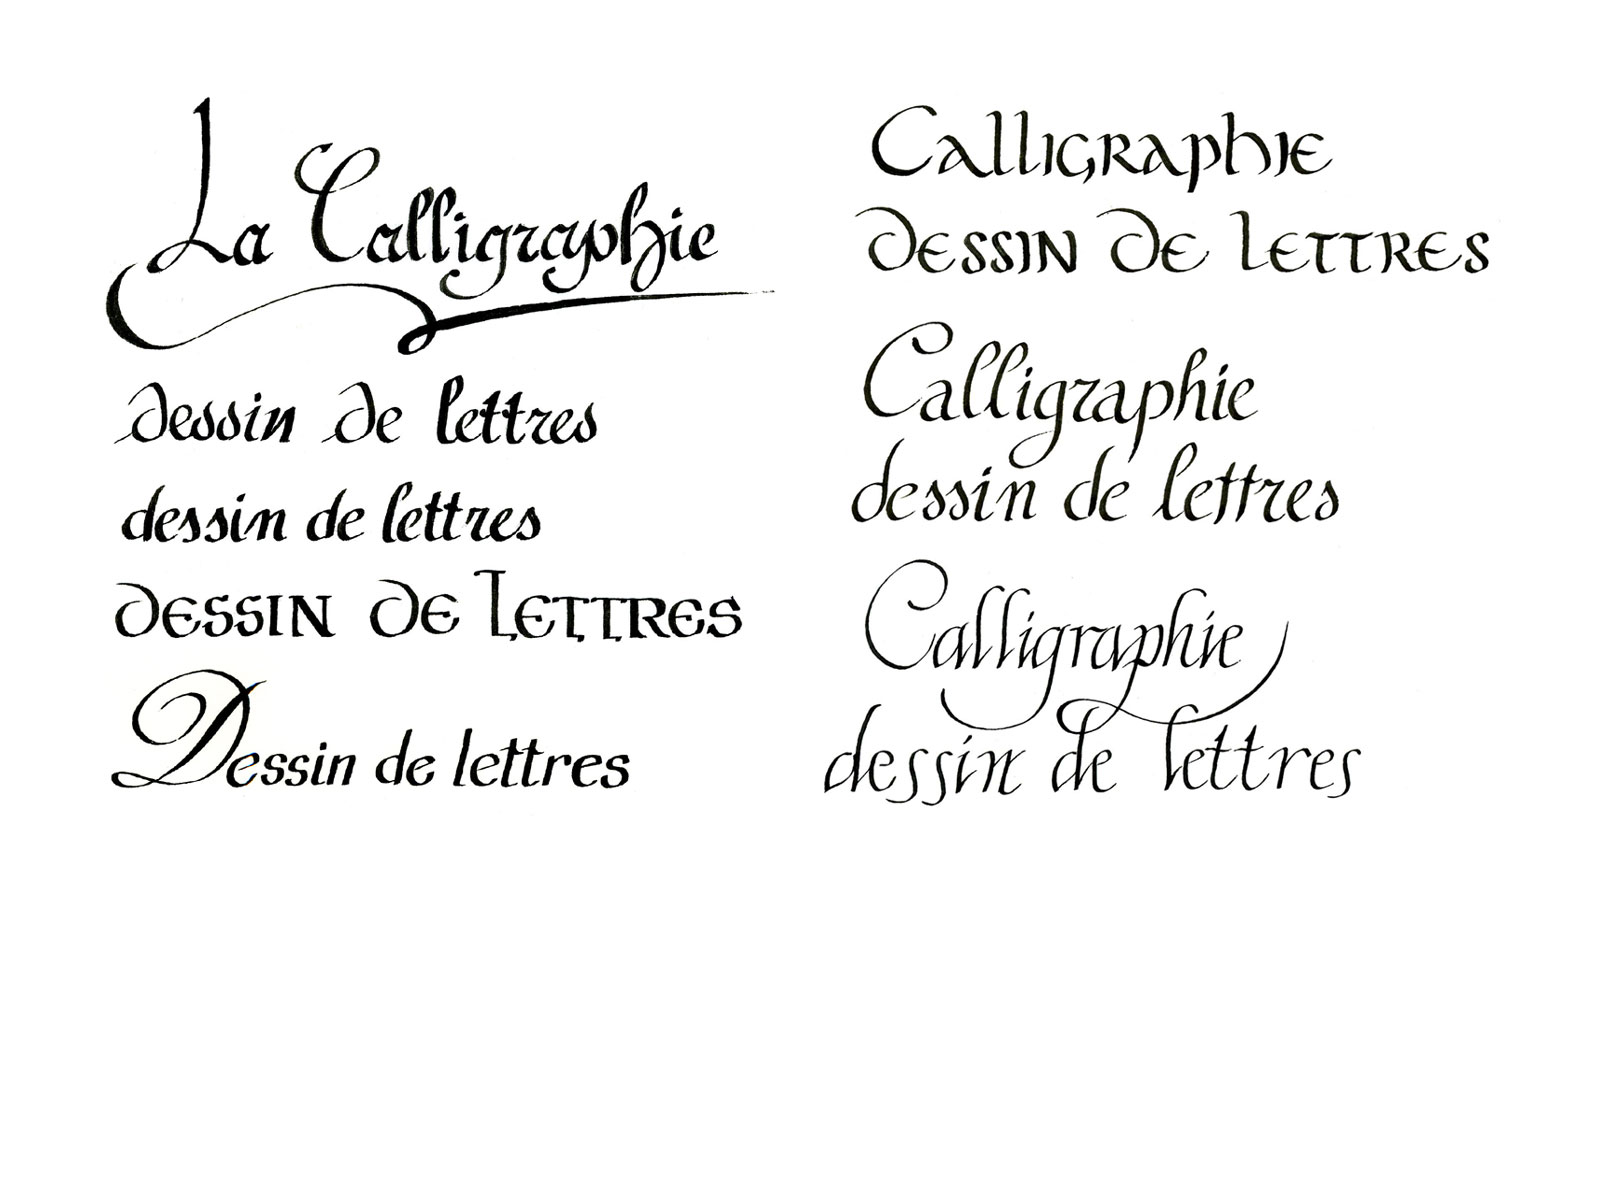 PERRONYves-Illustrations-TYPO / CALLIGRAPHIE-3089